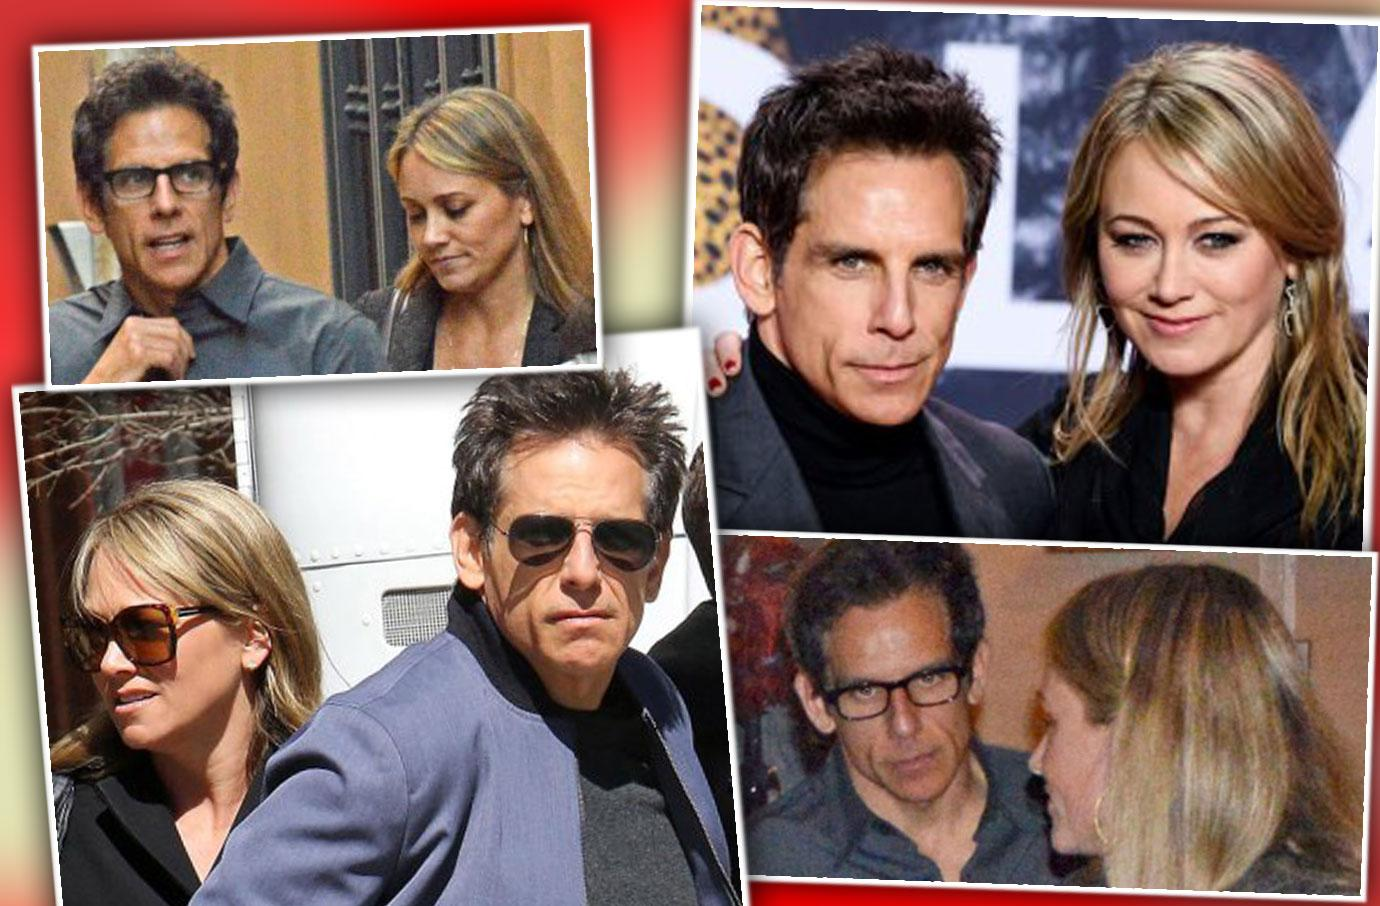 [PHOTOS] That Show Why Ben Stiller Split With Christine Taylor